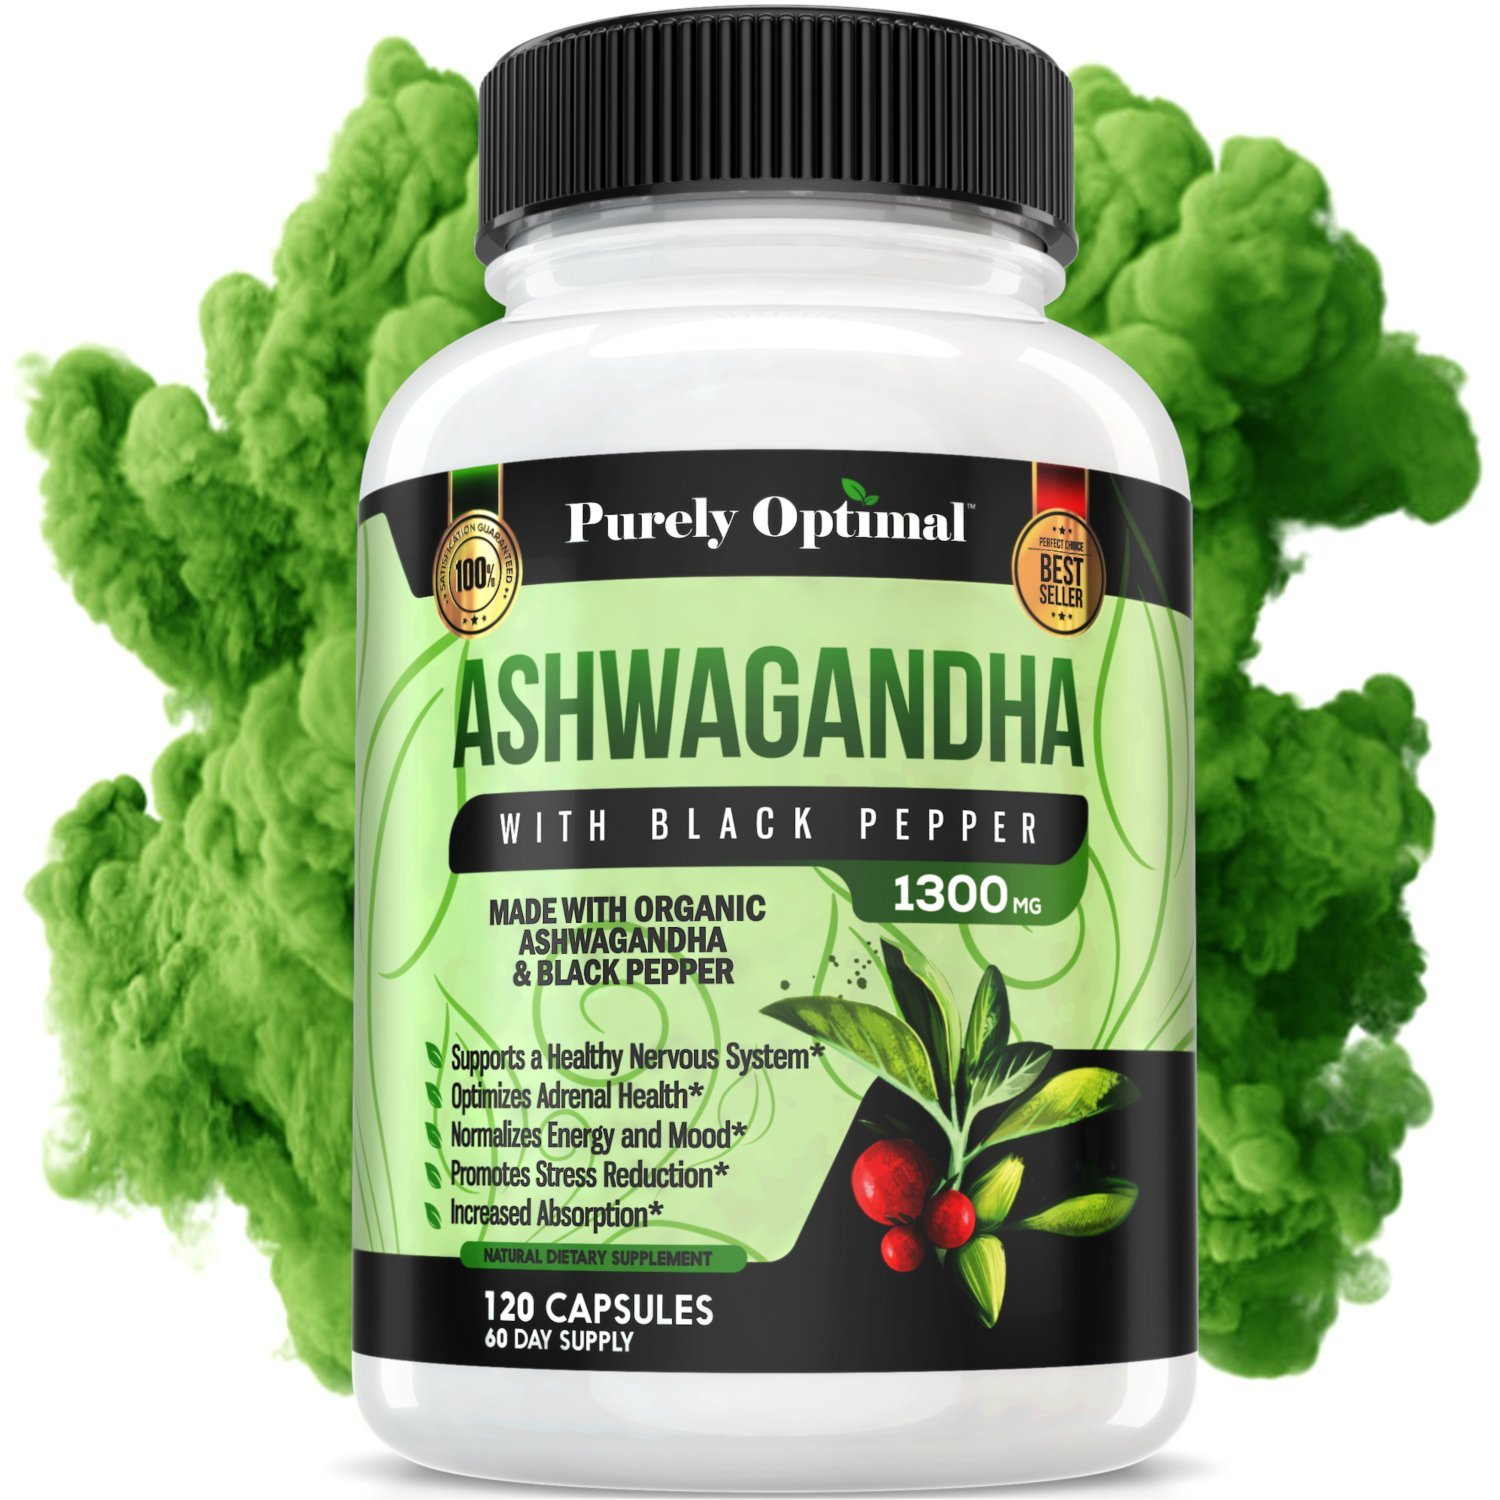 Organic Ashwagandha Root Powder 1300 mg - 120 Veggie Capsules - Anxiety Relief, Stress Relief, Thyroid Support, Adrenal Support & Fatigue Supplements, Mood Enhancer - w/Organic Black Pepper Extract